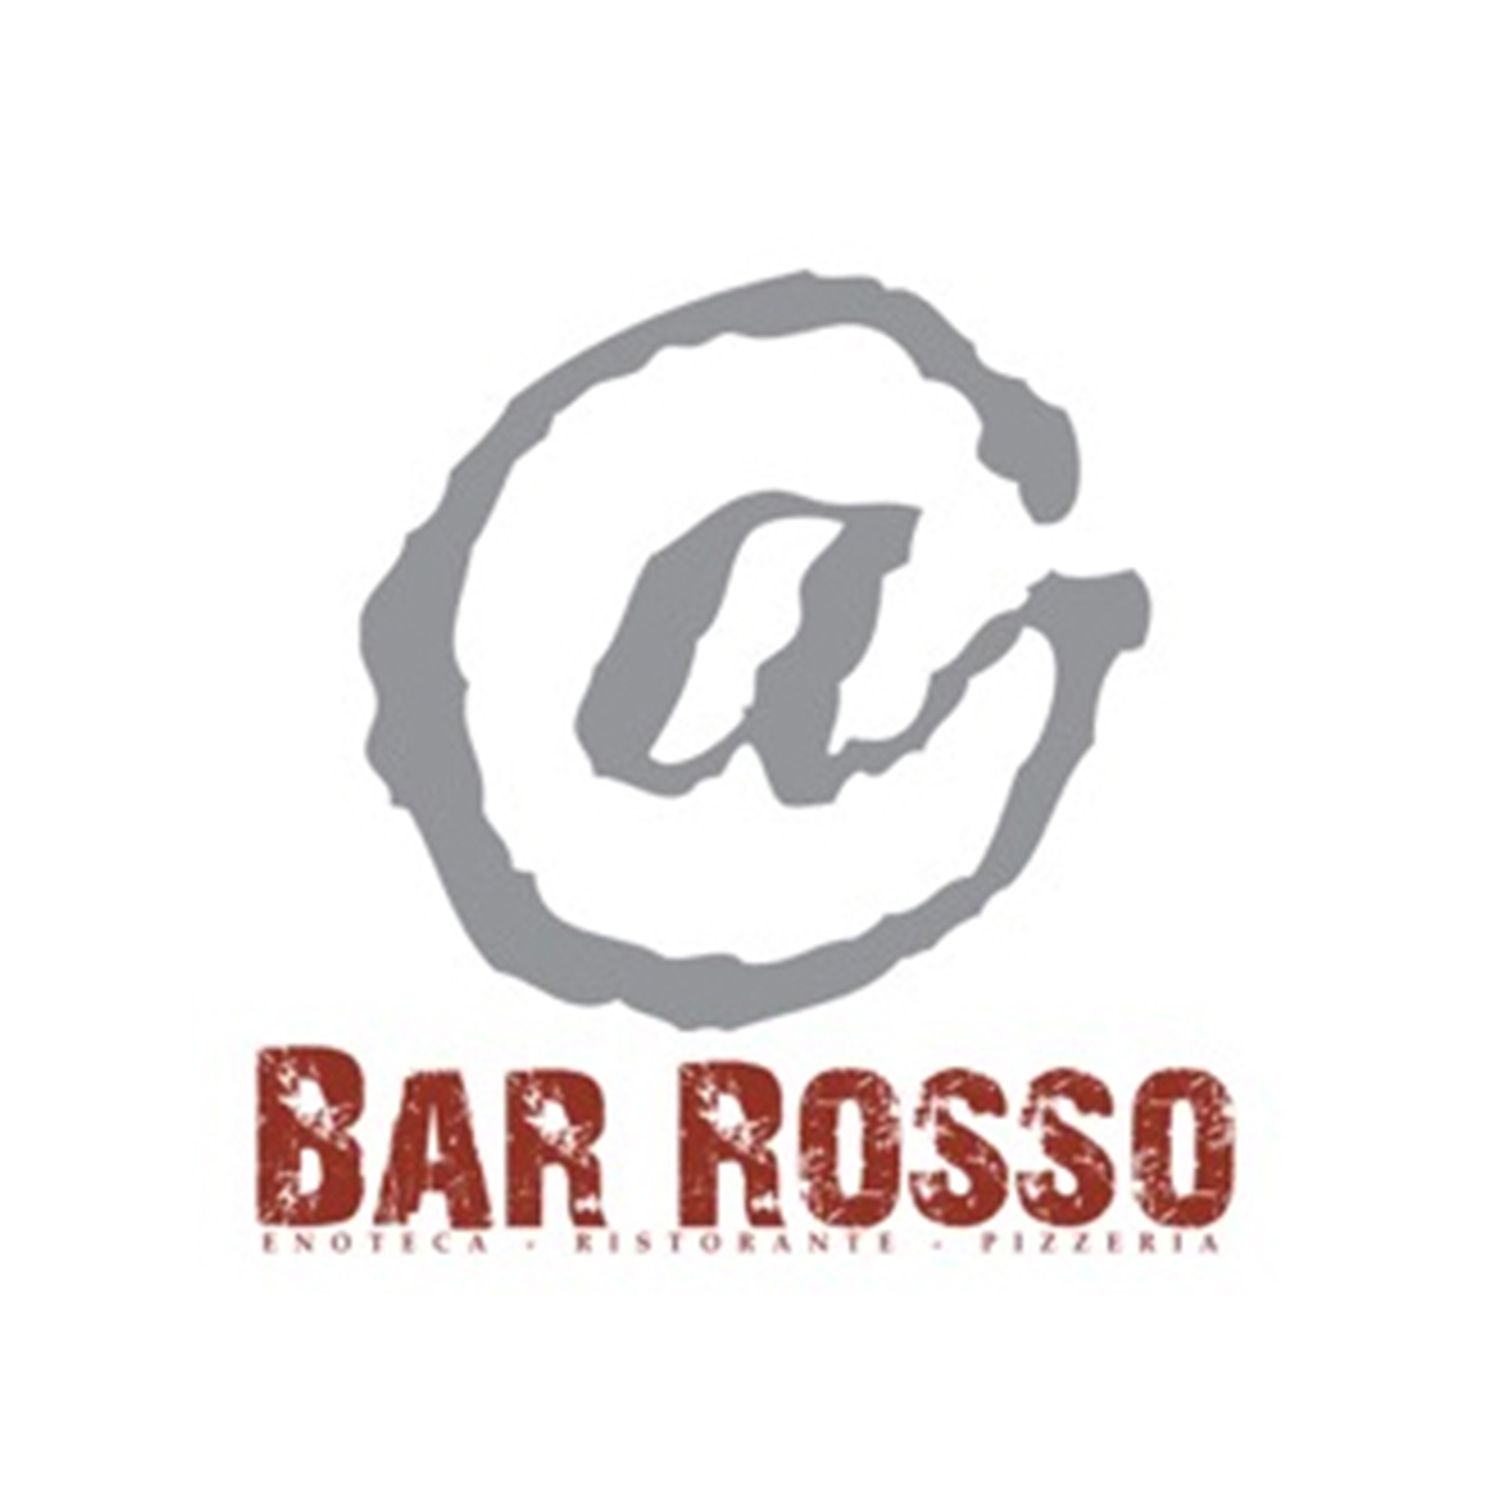 Bar Rosso : Italian small plates & wood-fired pizza in an upscale bi-level space with stone & steel decor.